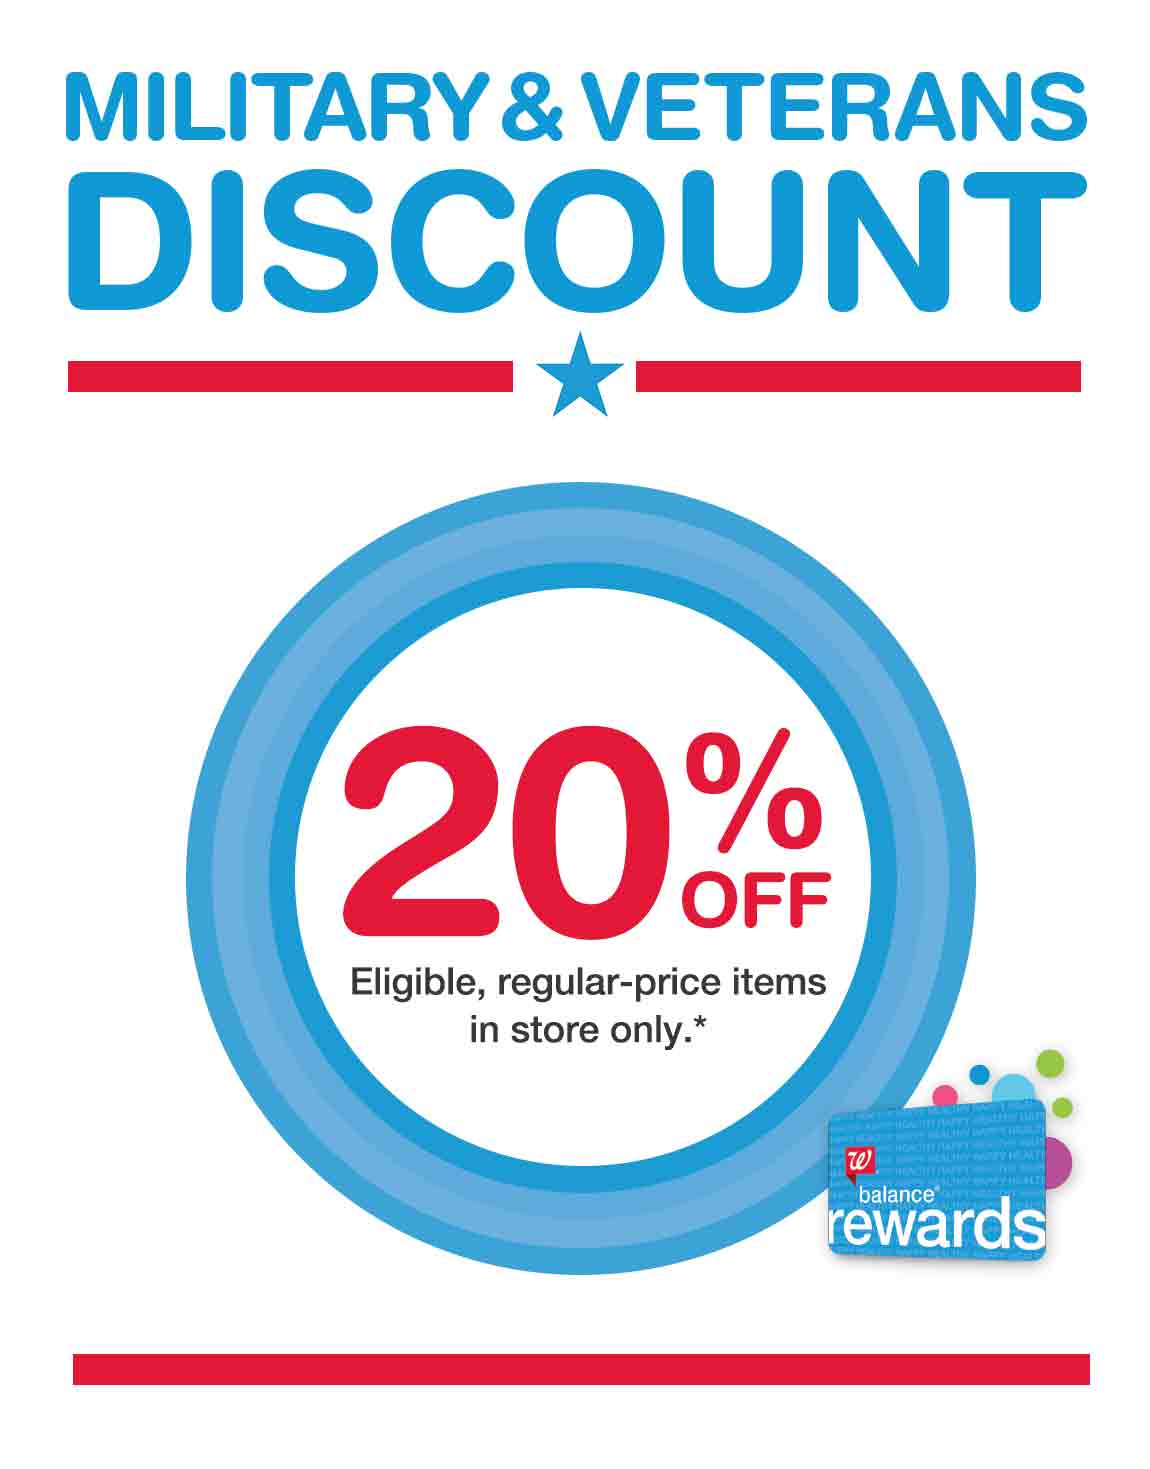 Your military ID can score you some pretty sweet retail discounts. Almost all the usual stores you'll find in a mall or outlet will offer somewhere around a 10% discount, but some places go well.